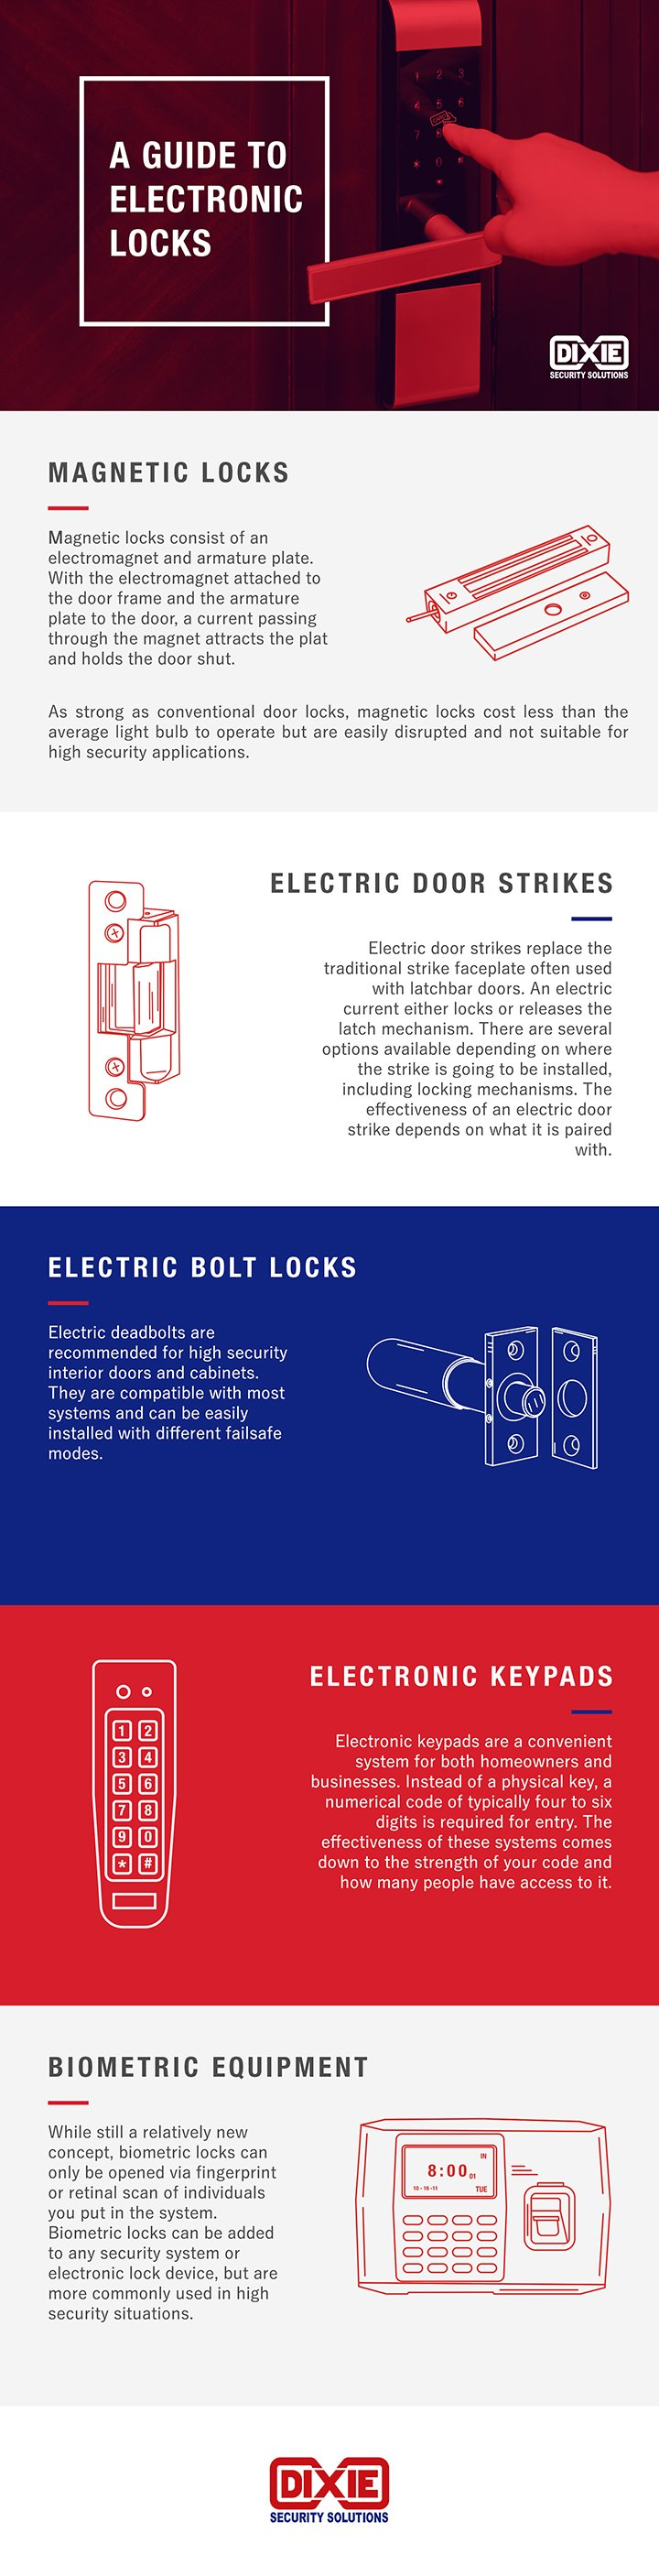 different types of electronic locks